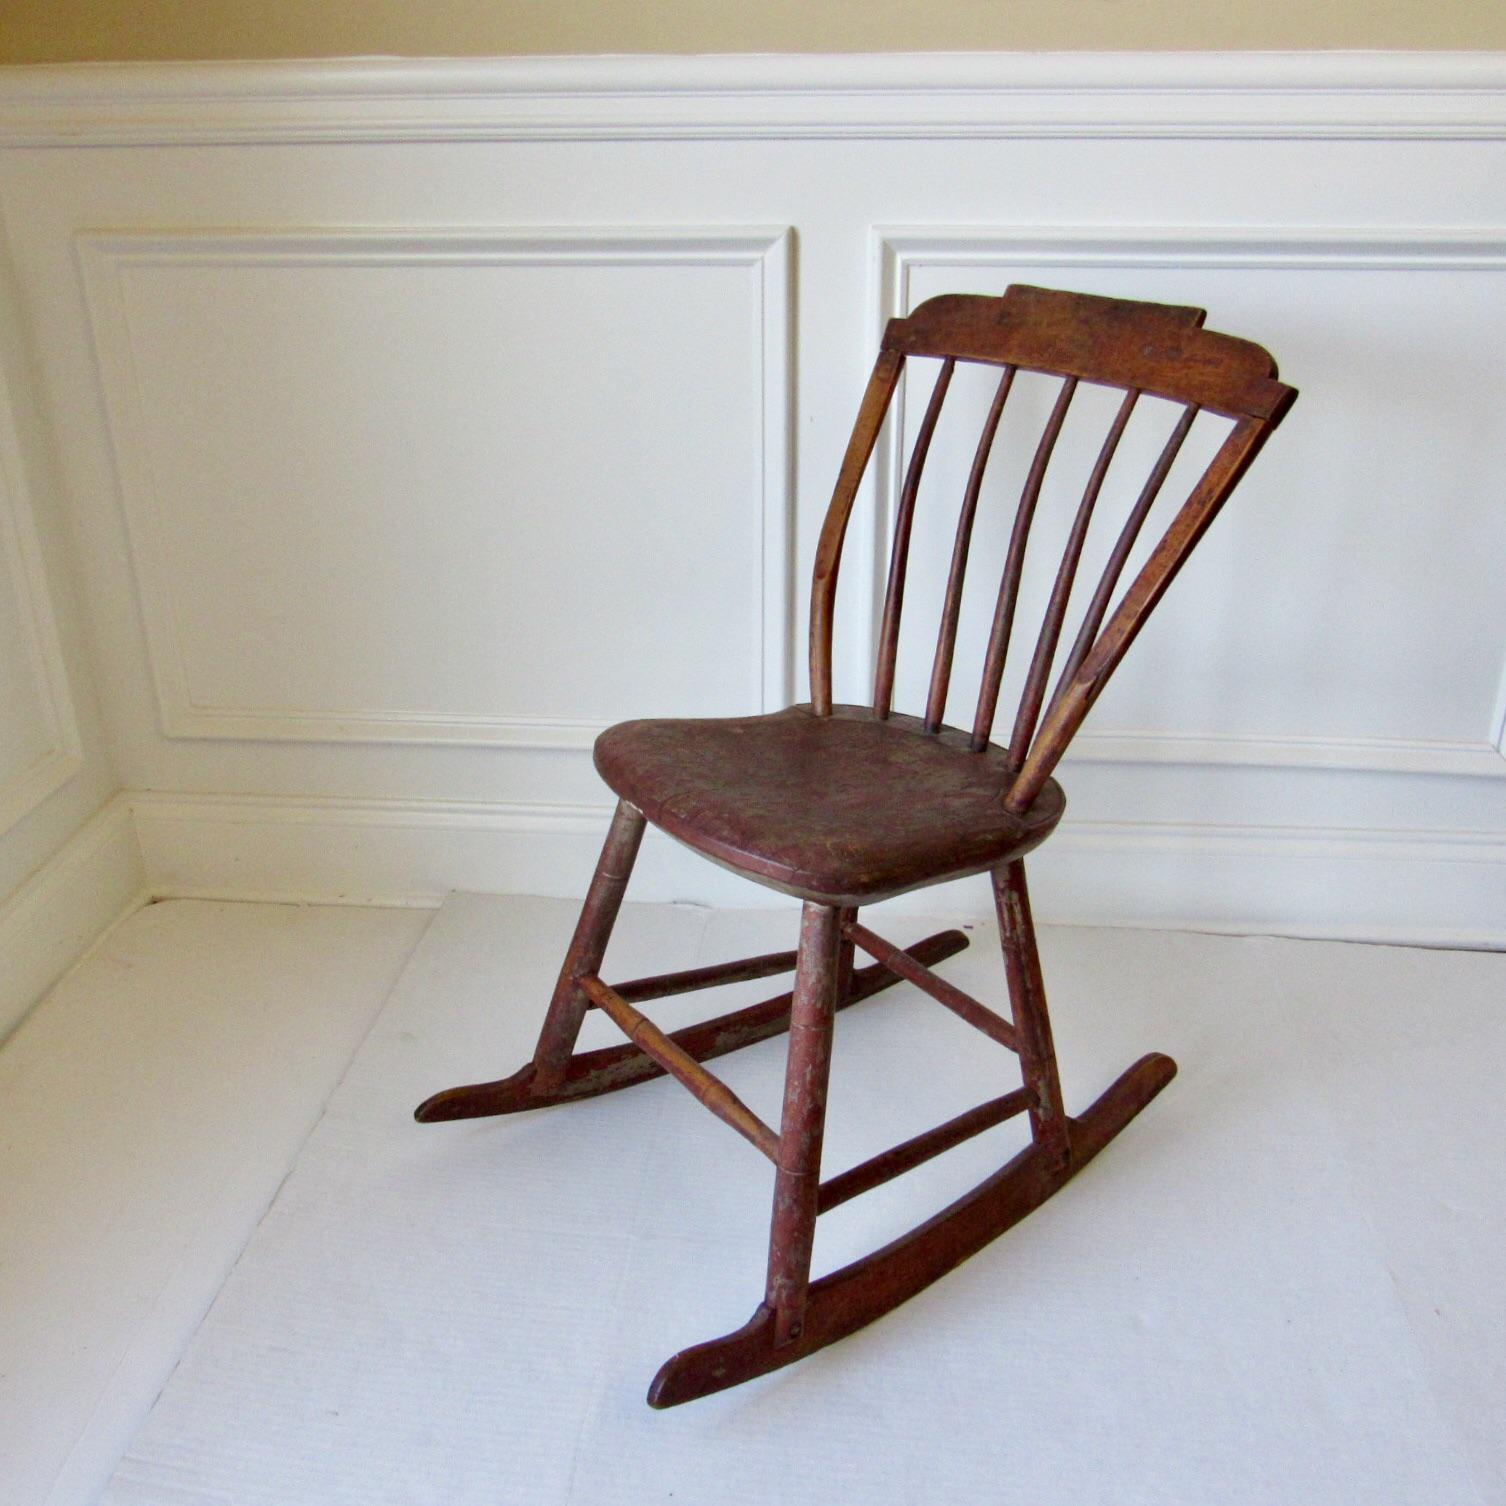 Antique Childs Wooden Rocking Chair - Image 5 of 5 & Antique Childs Wooden Rocking Chair | Chairish